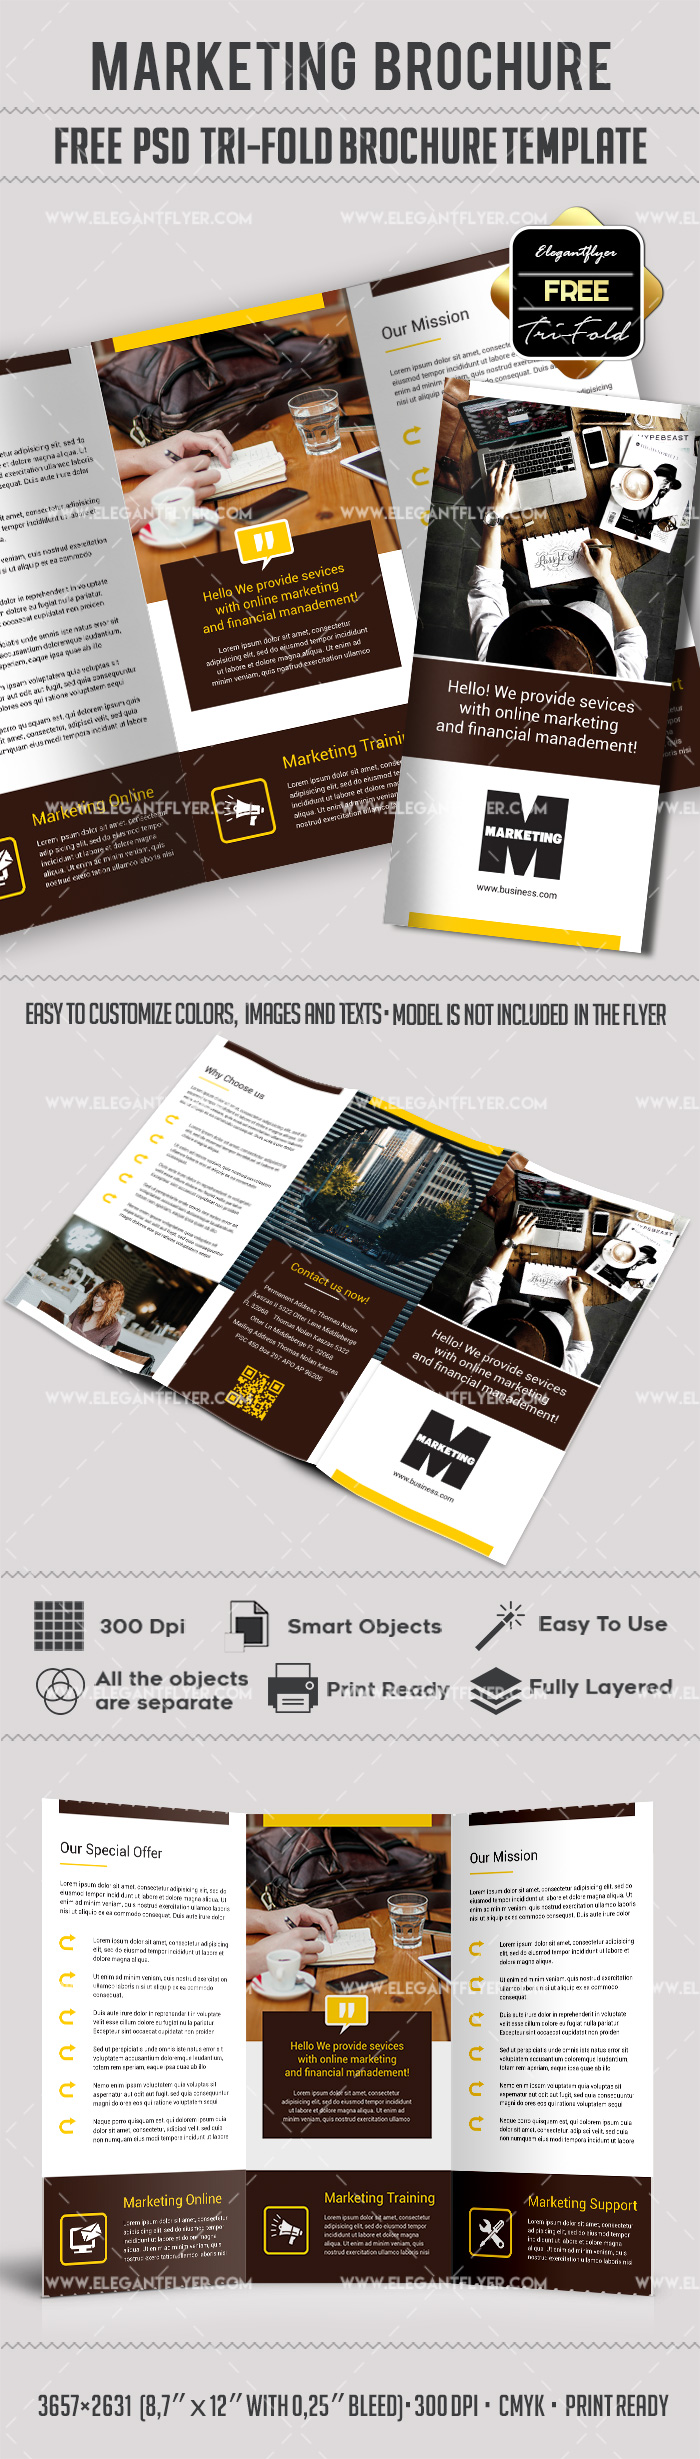 Marketing free tri fold psd brochure template by for Brochure online template